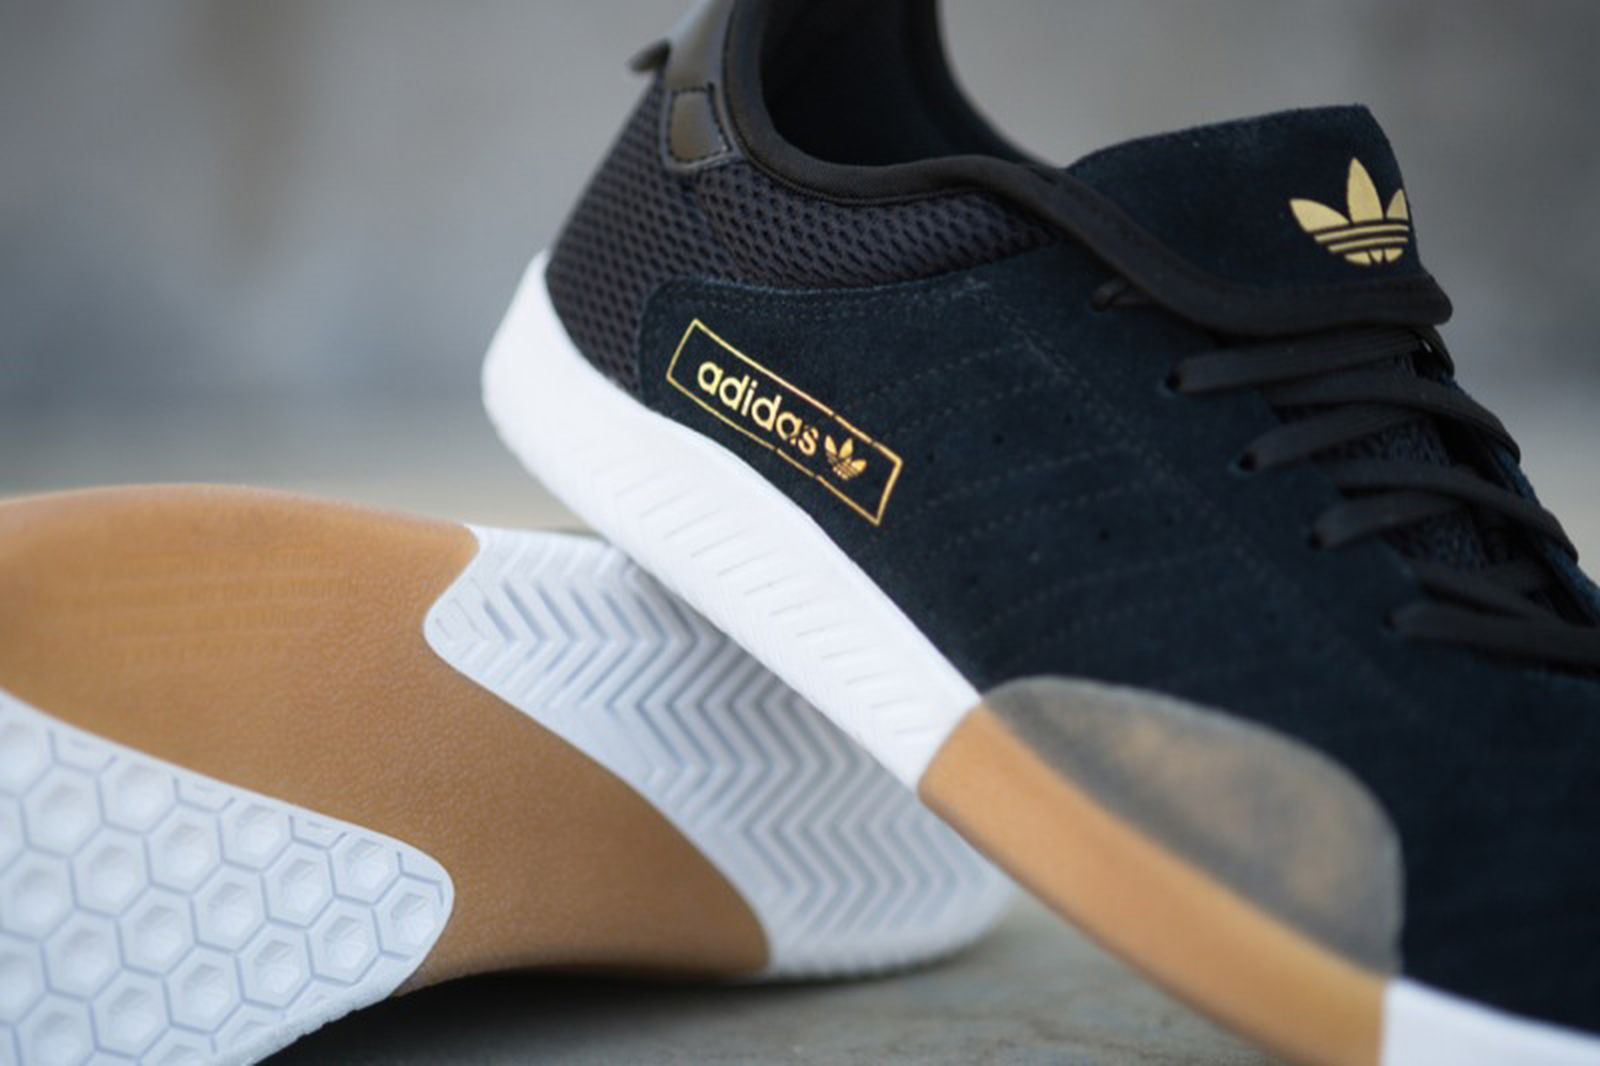 adidas Skateboarding 3ST.003: Release Date, Price, & More Info